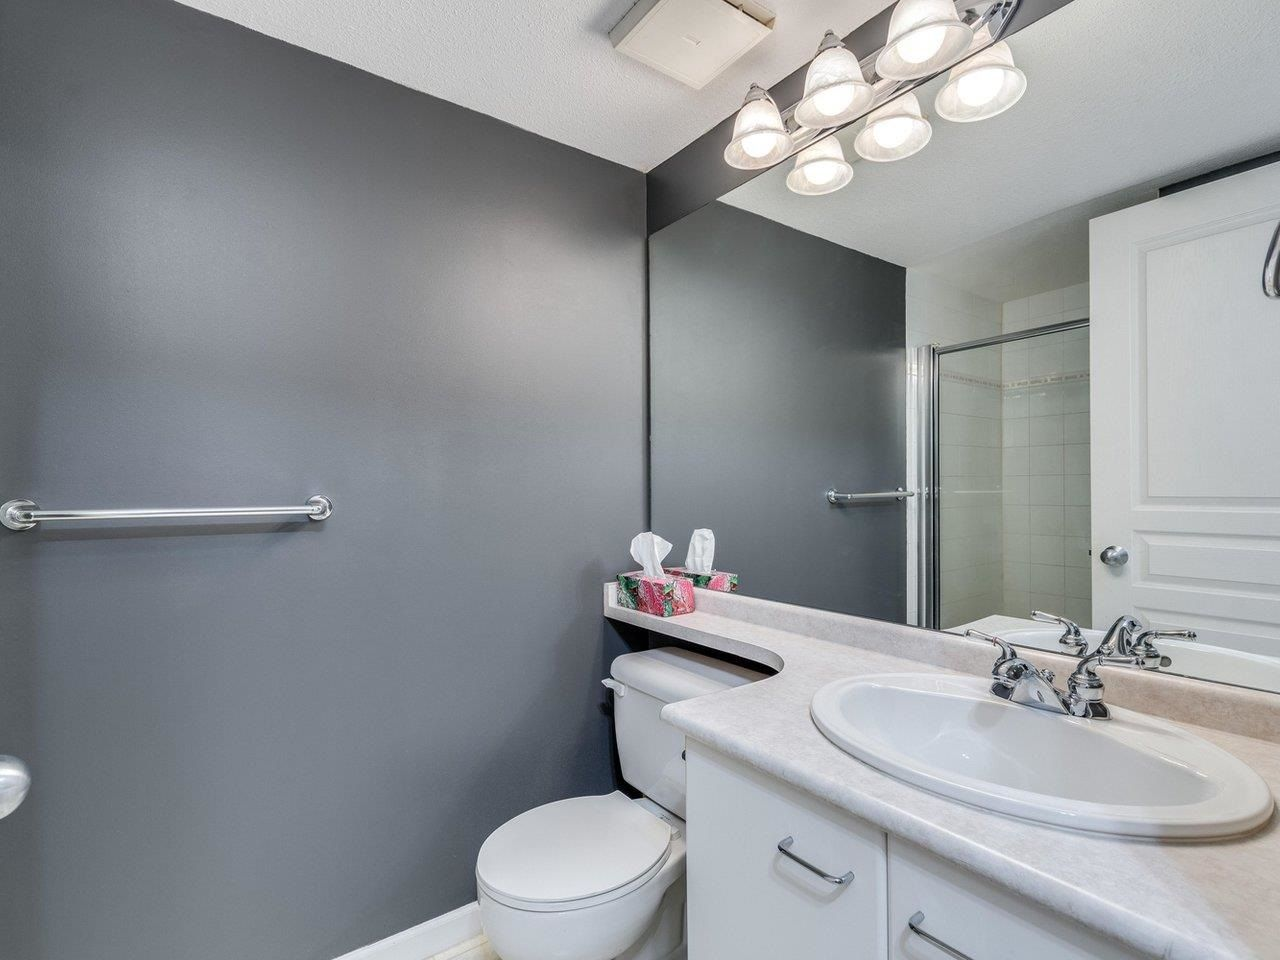 """Photo 19: Photos: 320 1252 TOWN CENTRE Boulevard in Coquitlam: Canyon Springs Condo for sale in """"The Kennedy"""" : MLS®# R2595291"""